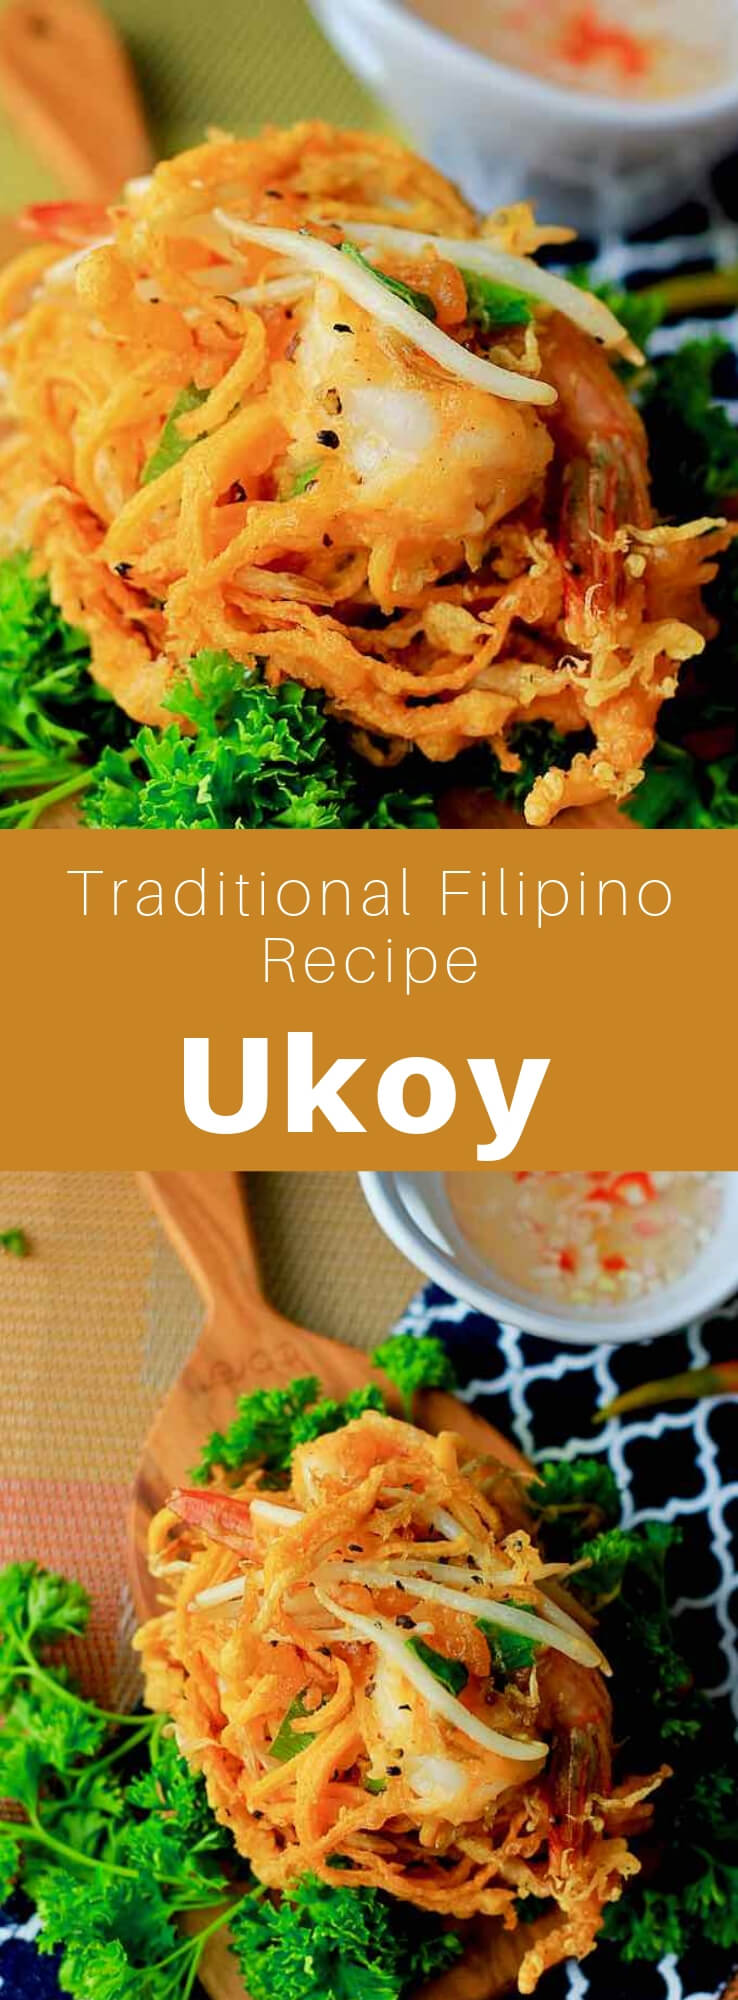 Ukoy ou okoy is a small traditional crispy fritter, popular in the Philippines and Palau, prepared with shrimp and vegetables. It is popular at breakfast, as a snack or appetizer. #Philippines #Palau #FilipinoCuisine #PalauanCuisine #FilipinoFood #PalauanFood #FilipinoRecipe #PalauanRecipe #SouthPacificCuisine #SouthPacificFood #IslandCuisine #WorldCuisine #196flavors